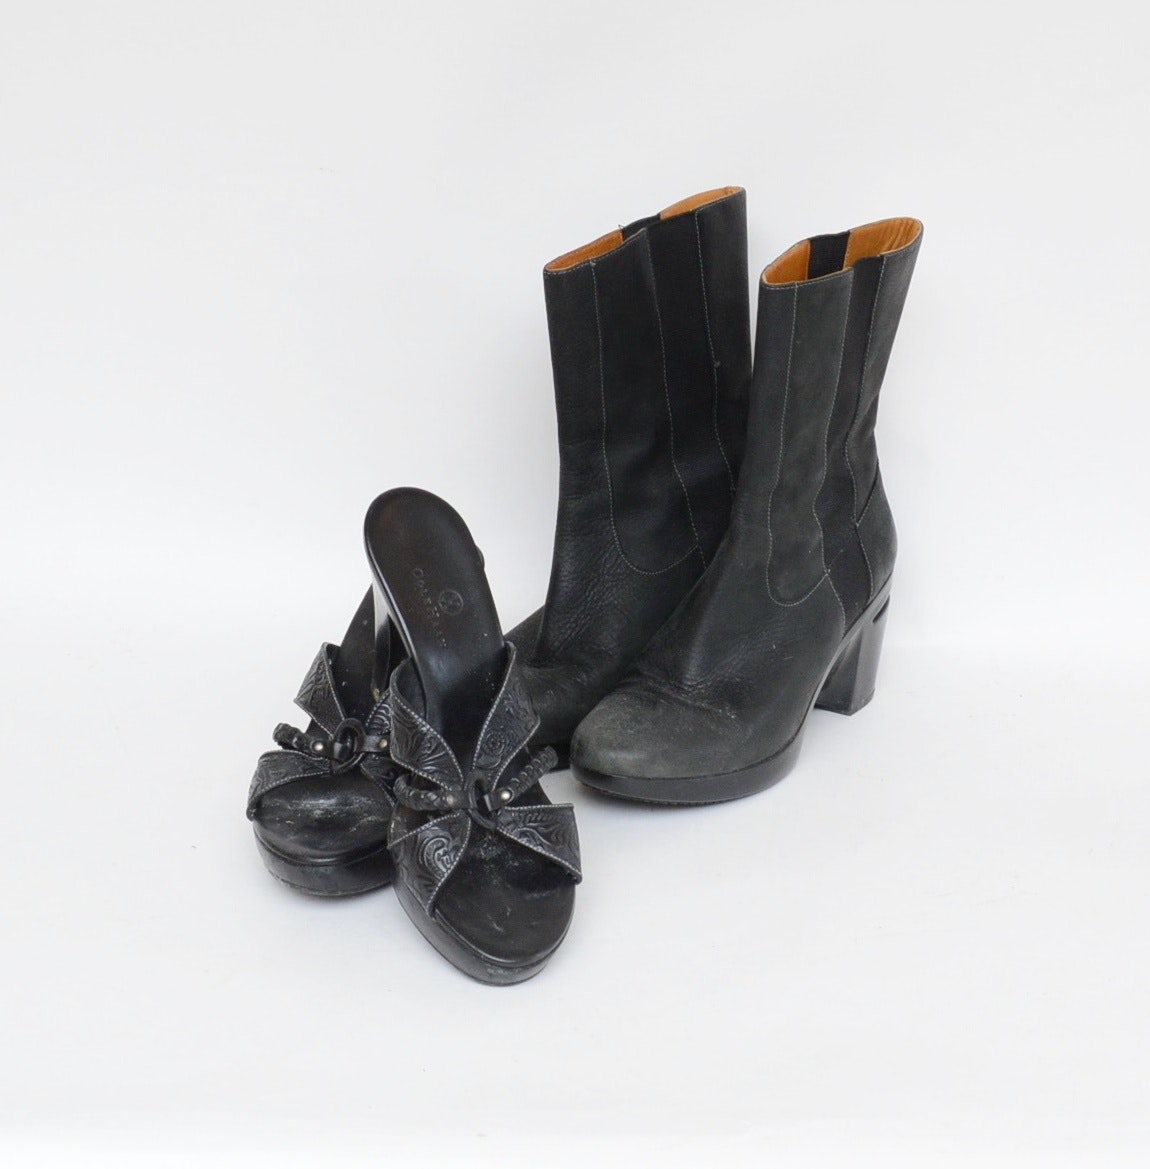 Cole Haan Tooled Leather High-Heeled Sandals and Pull-On Black Leather Boots